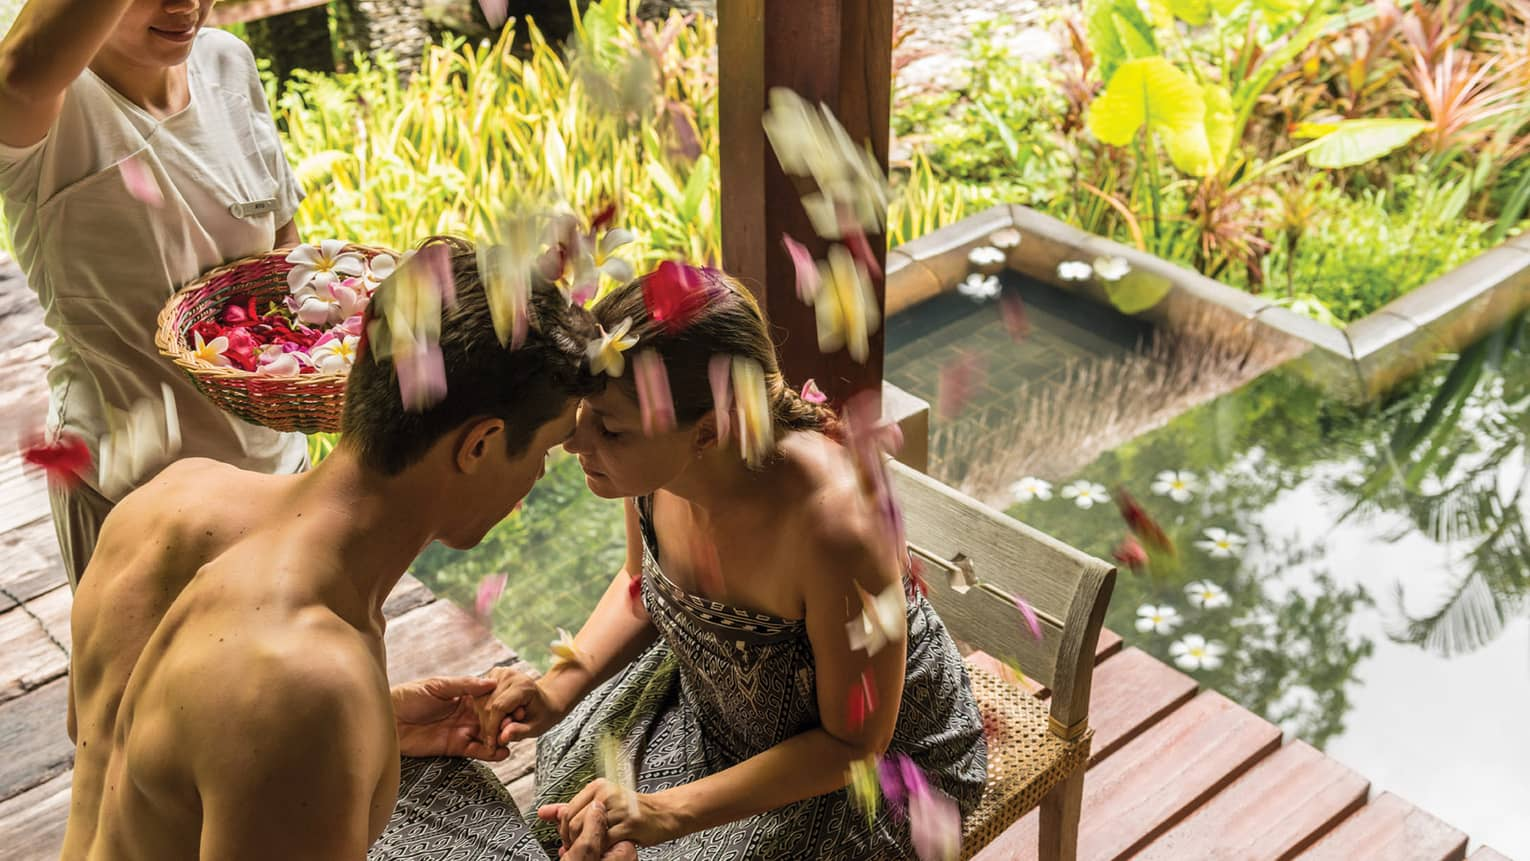 Couple on chairs, hold hands, foreheads together as woman sprinkles flower petals